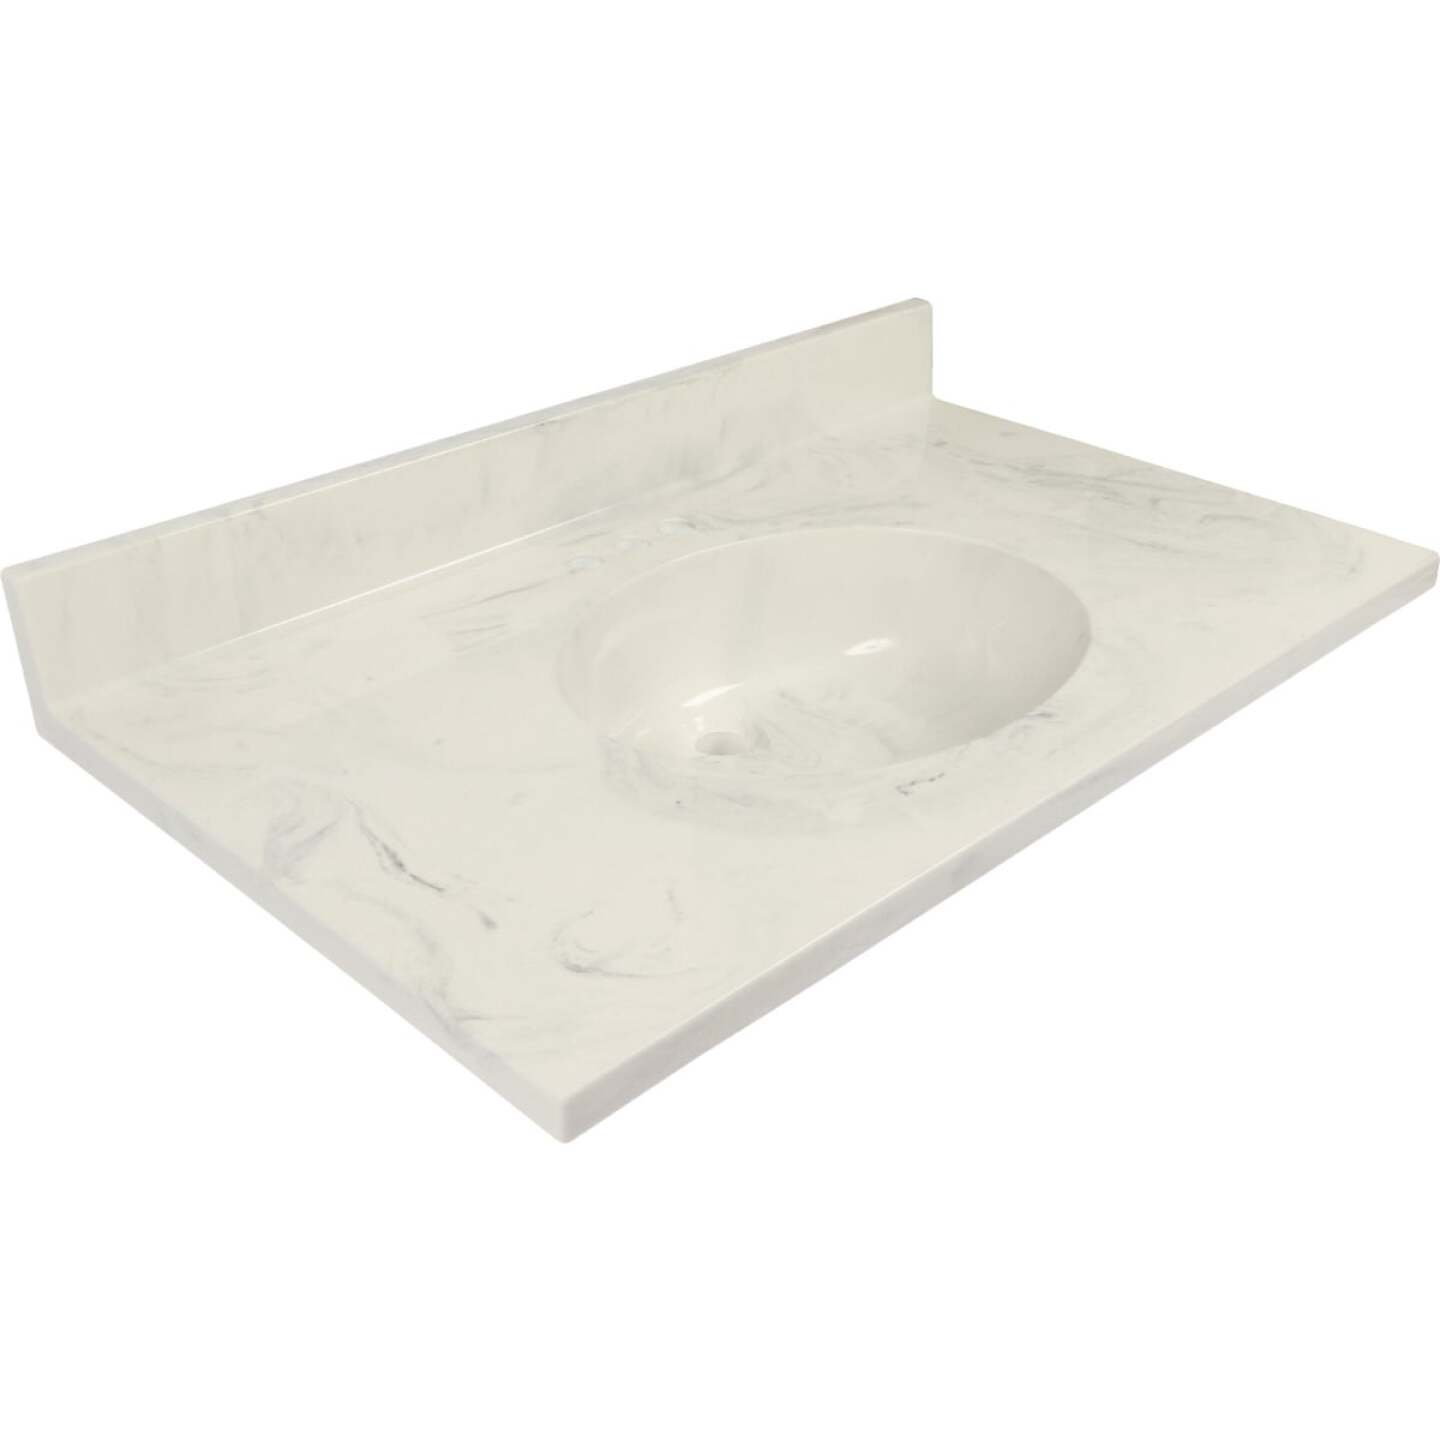 Modular Vanity Tops 37 In. W x 22 In. D Marbled Dove Gray Cultured Marble Vanity Top with Oval Bowl Image 1